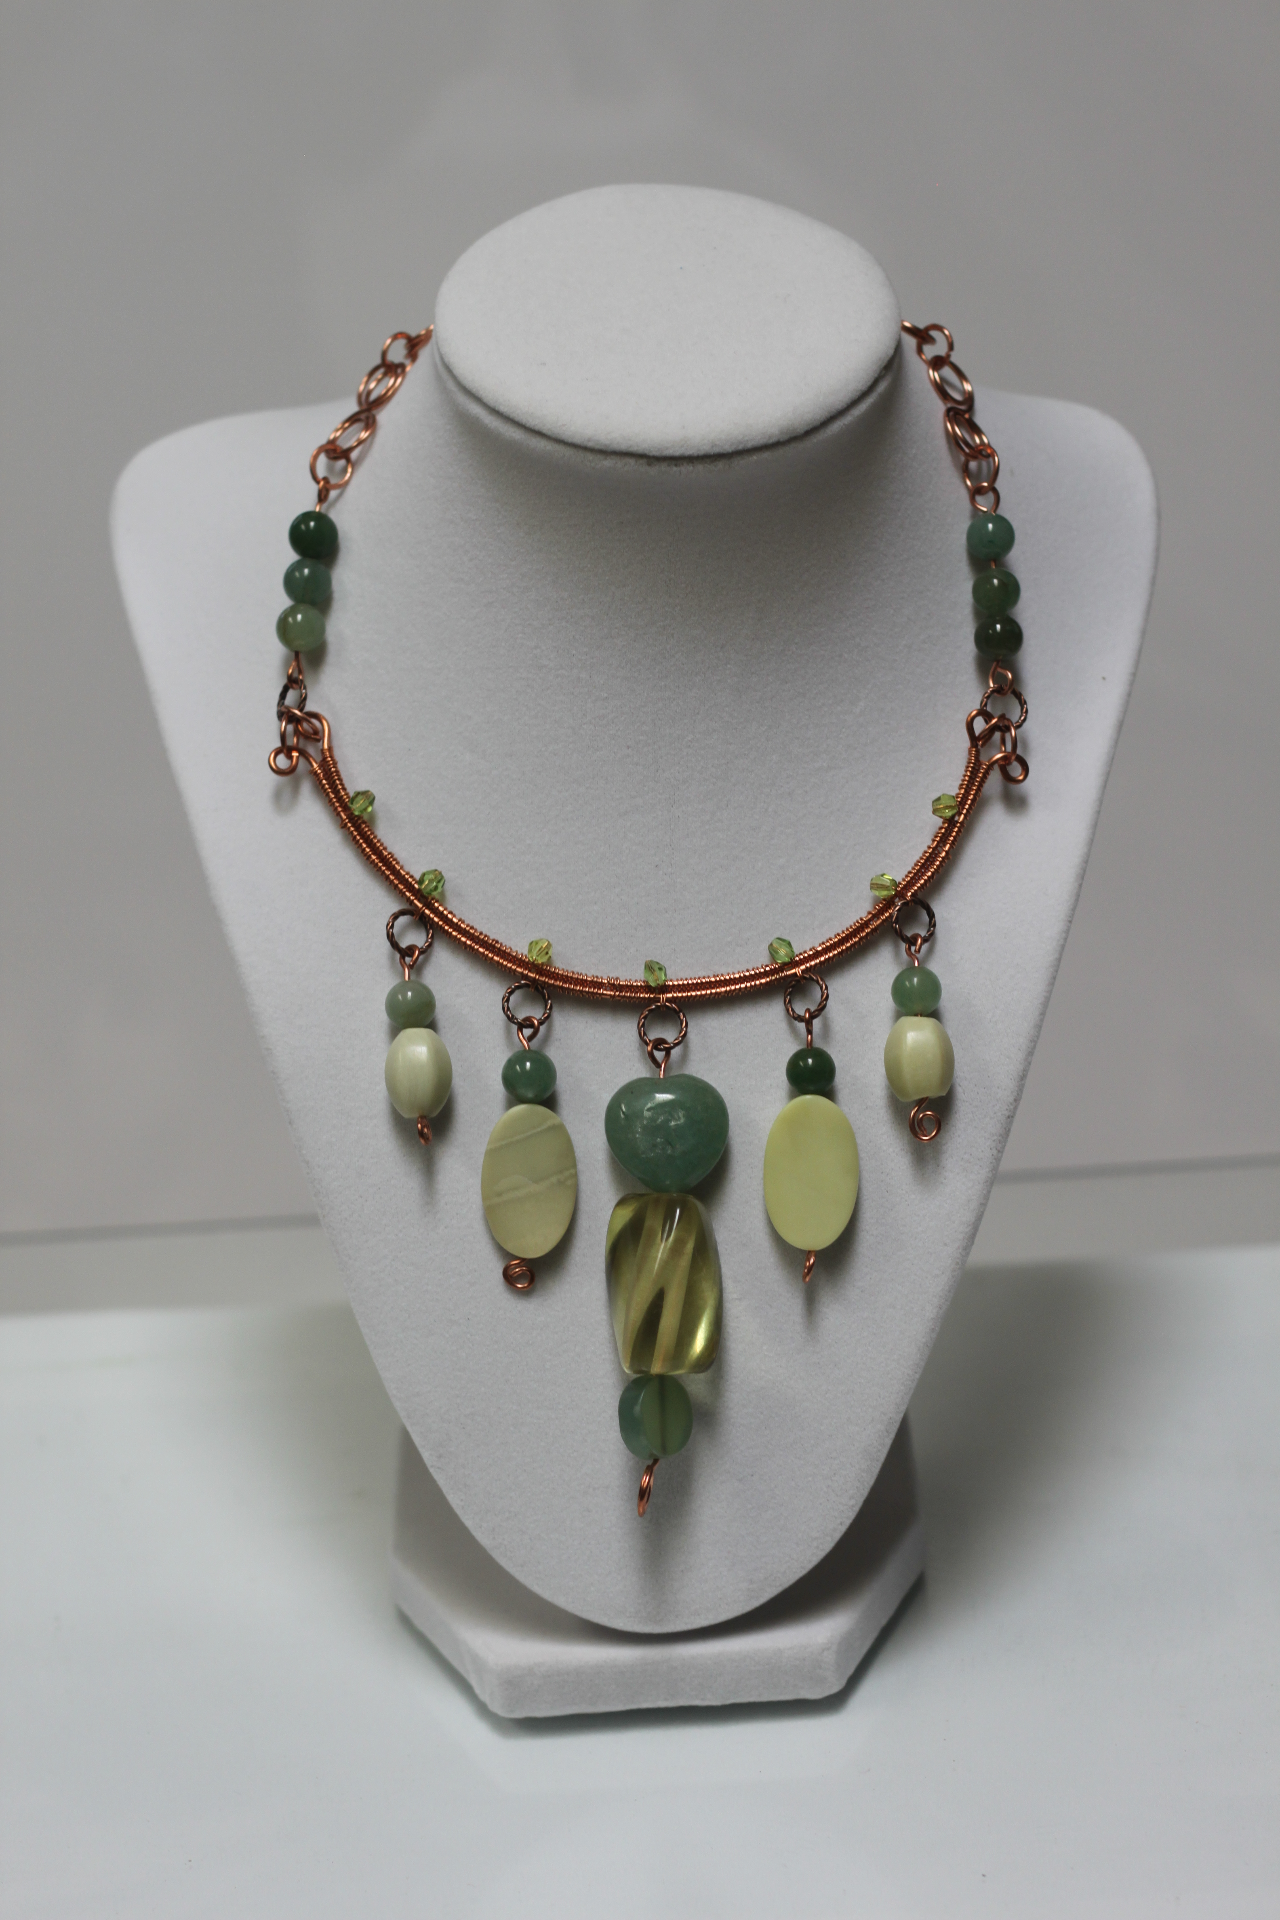 Woven necklace with green gemstone